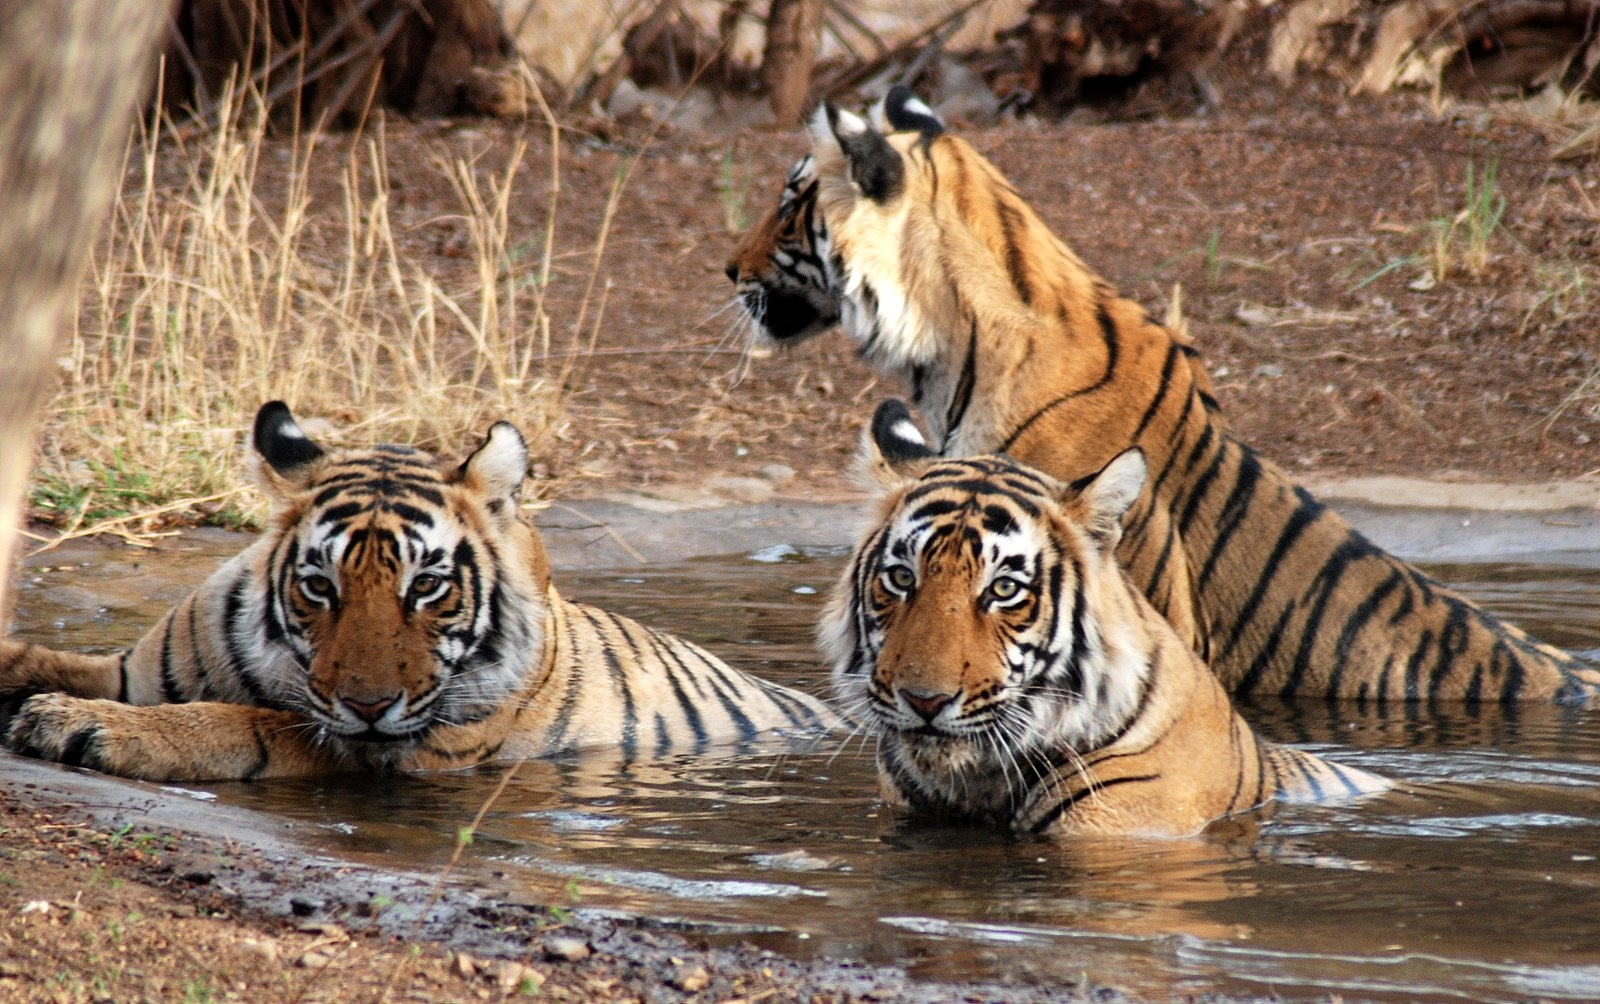 India Top 25 Wild life Sanctuaries 2